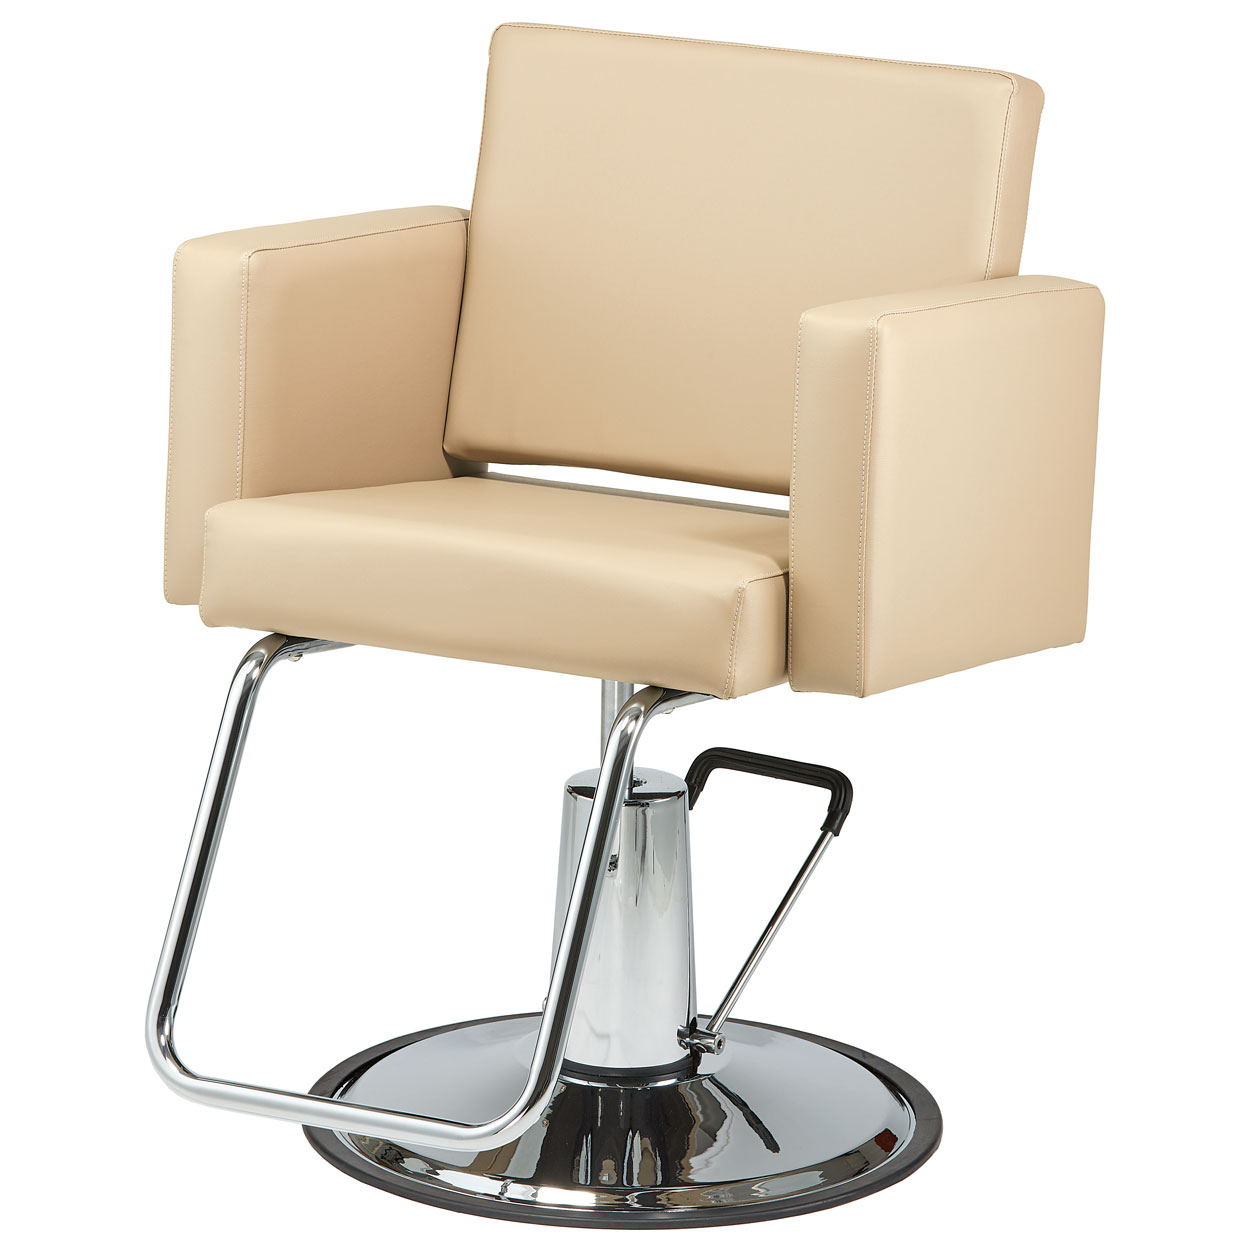 Pibbs 3406 Cosmo Hair Stylist Chair alternative product image 3